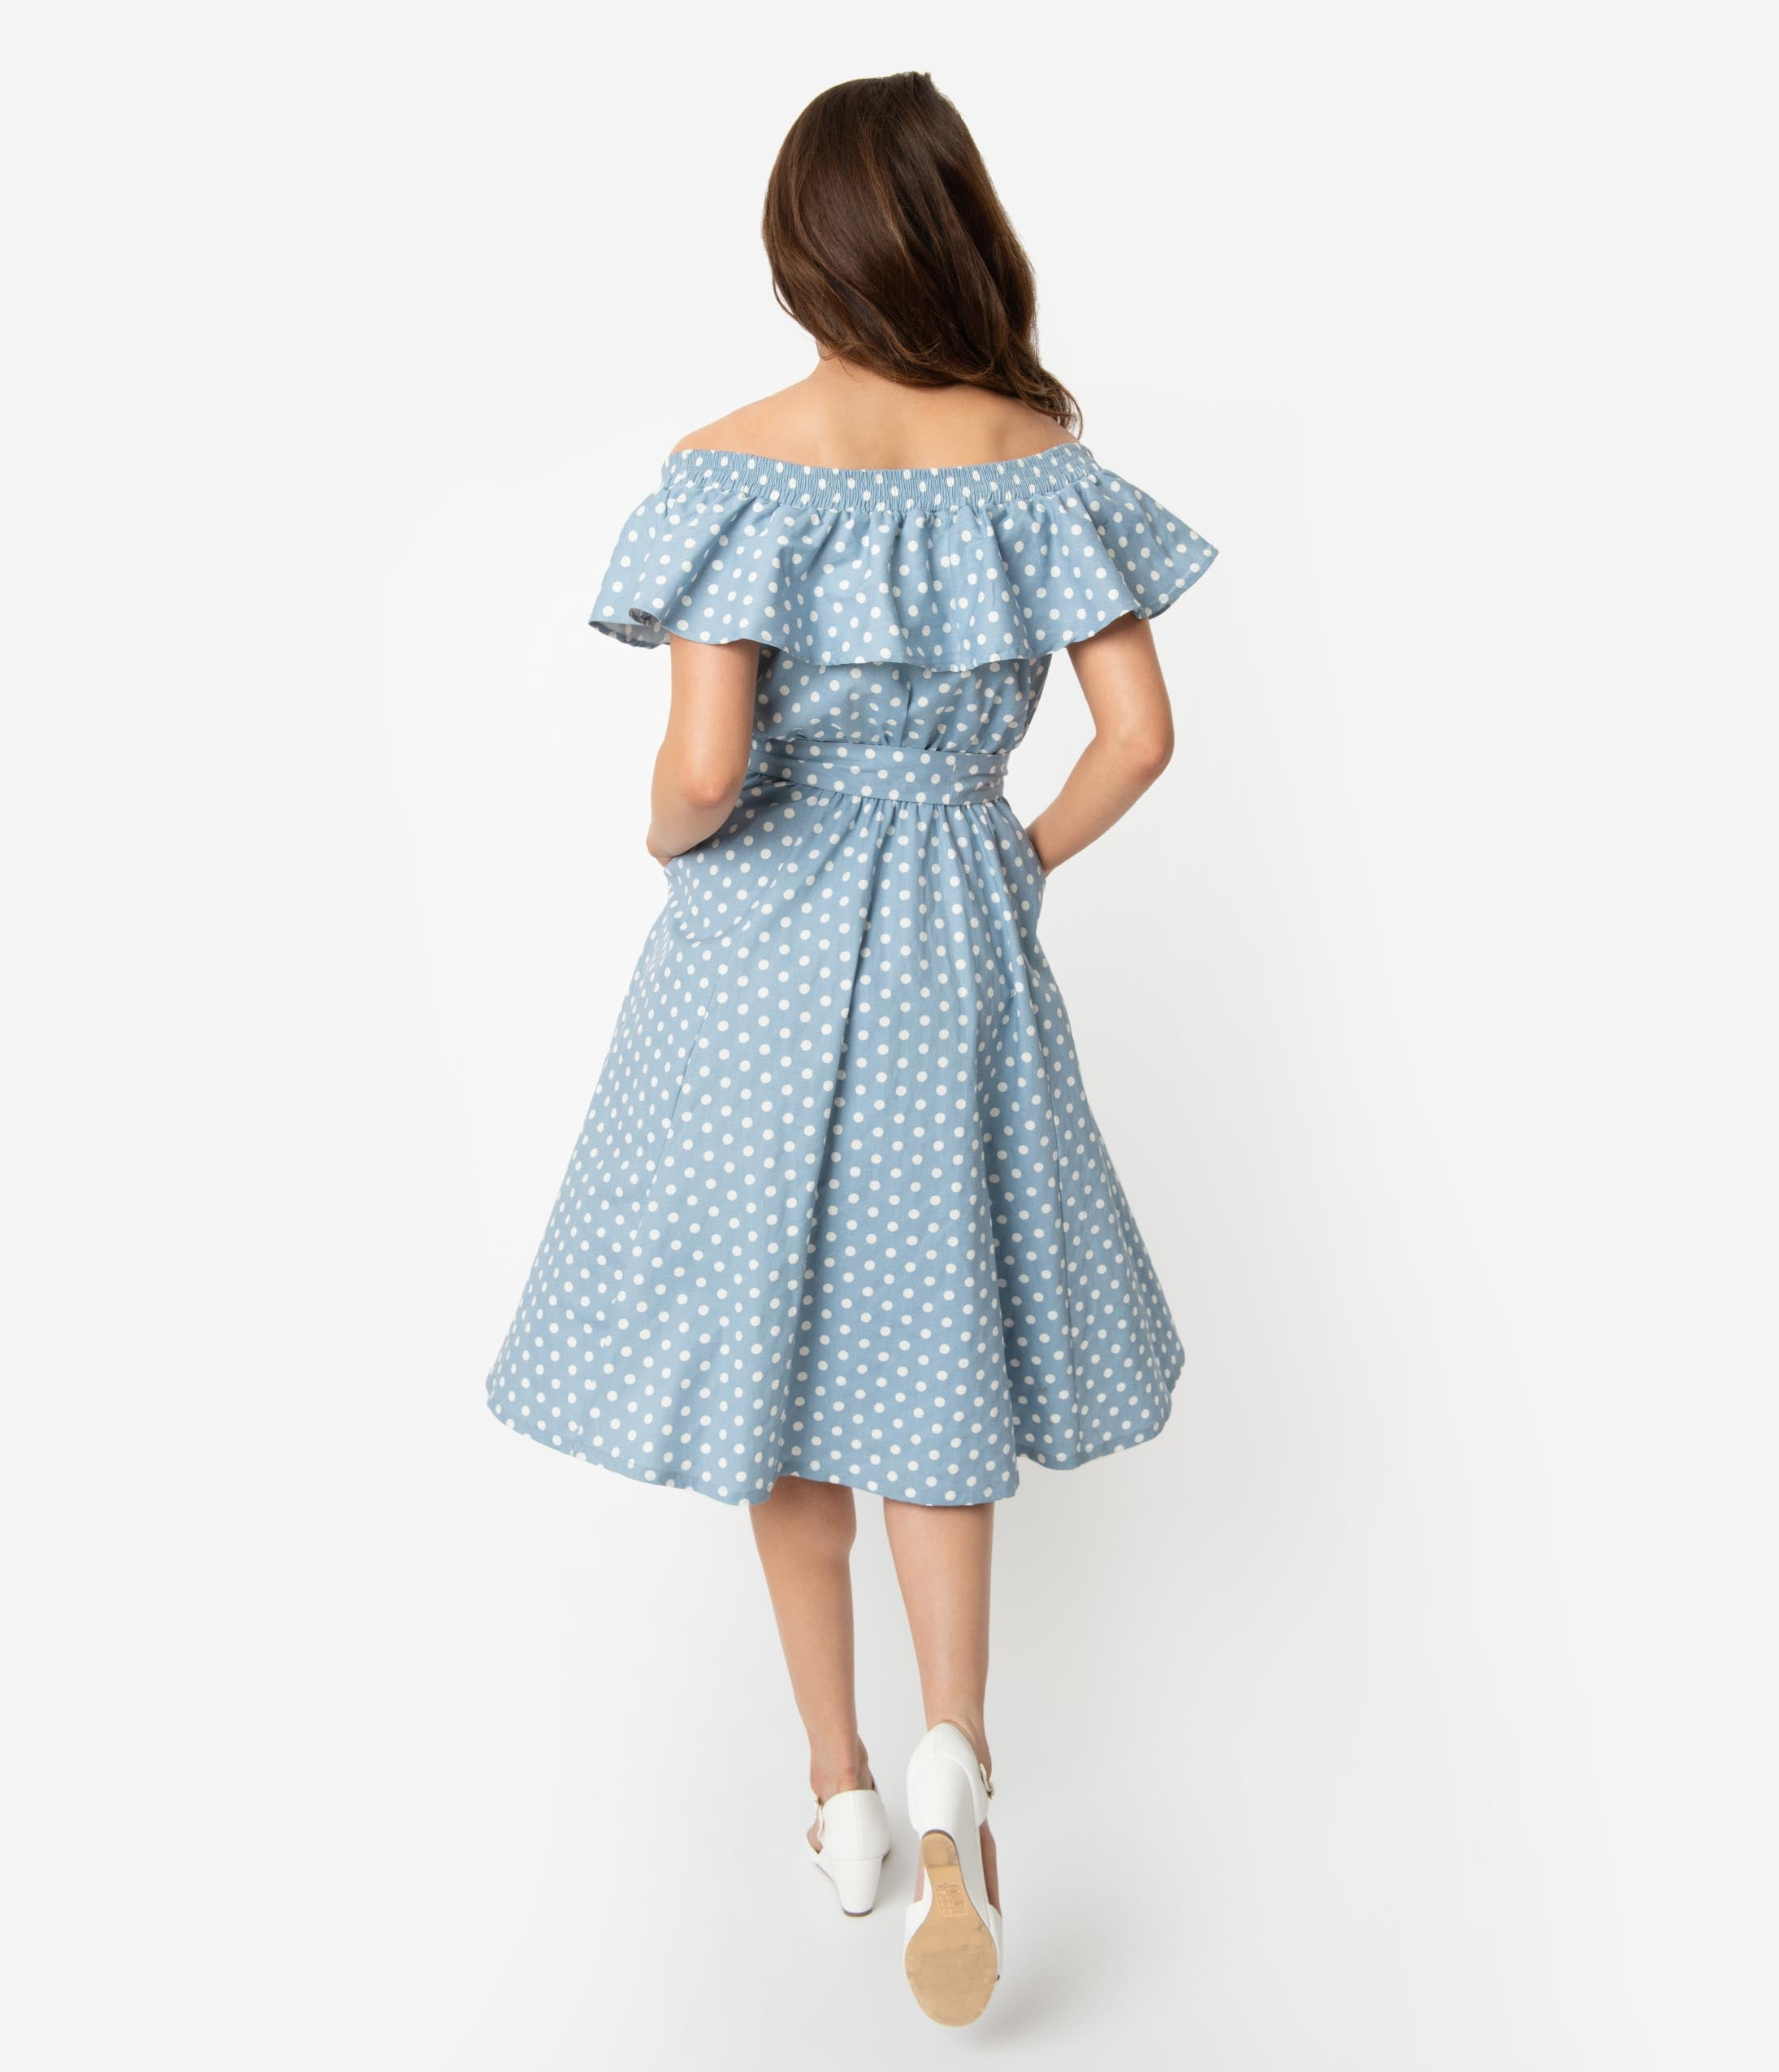 d01aa188d Vintage Clothing   Dresses – Retro Clothing Styles